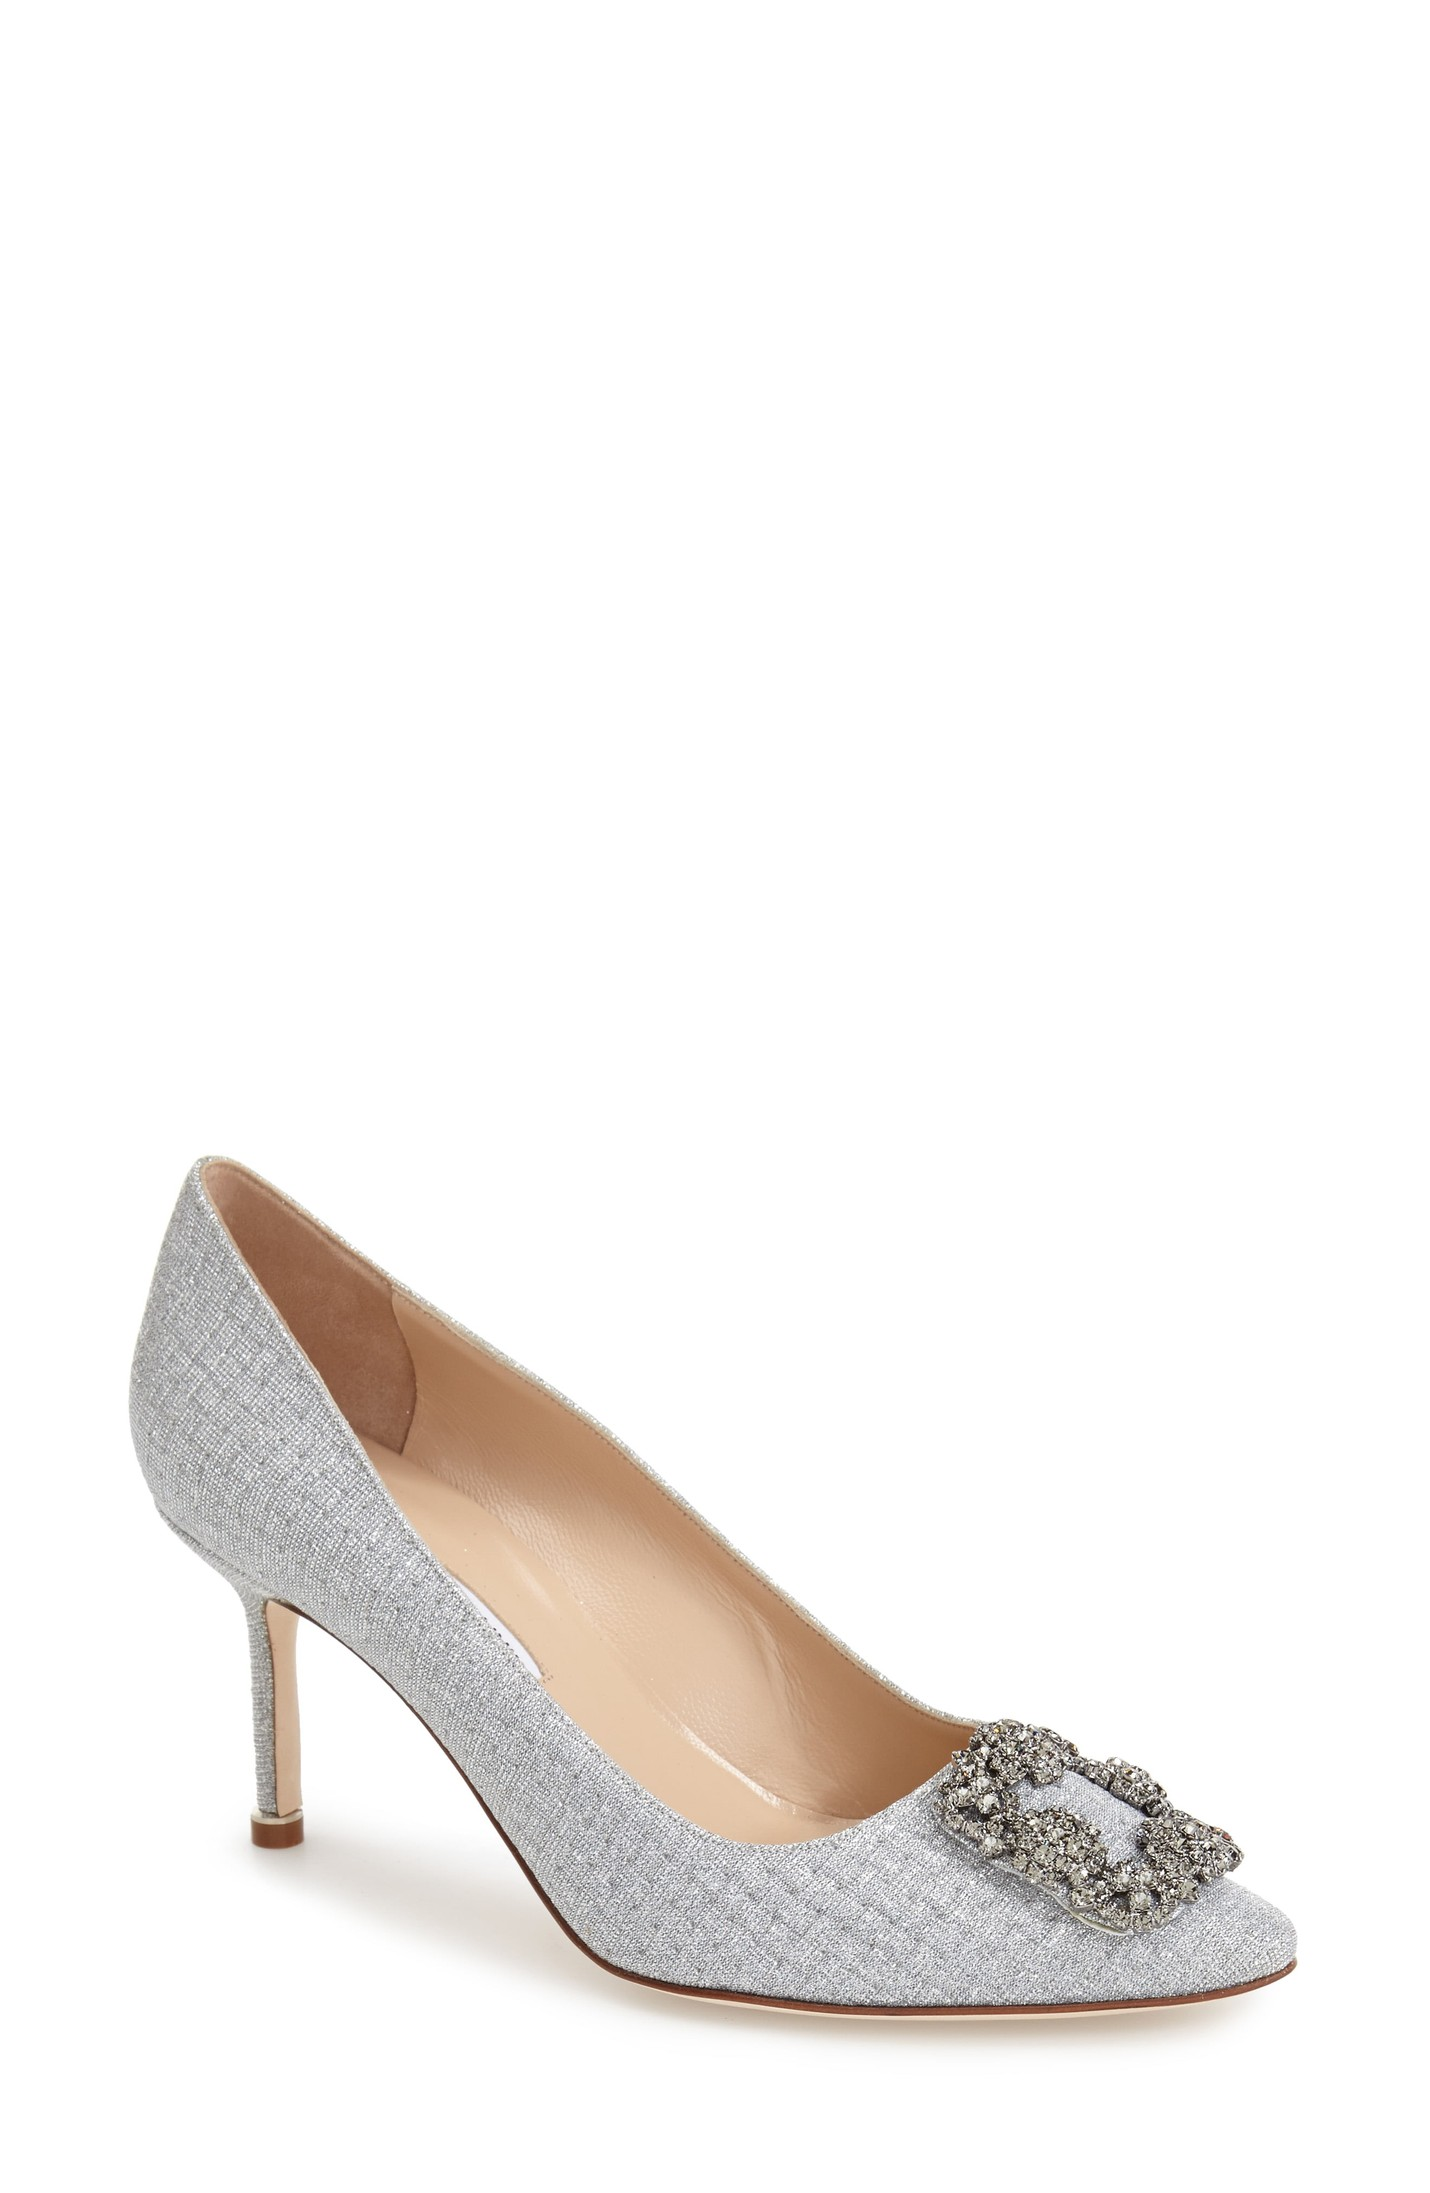 bb64c8cdd95c9 Shop Manolo Wedding Pumps and Heels